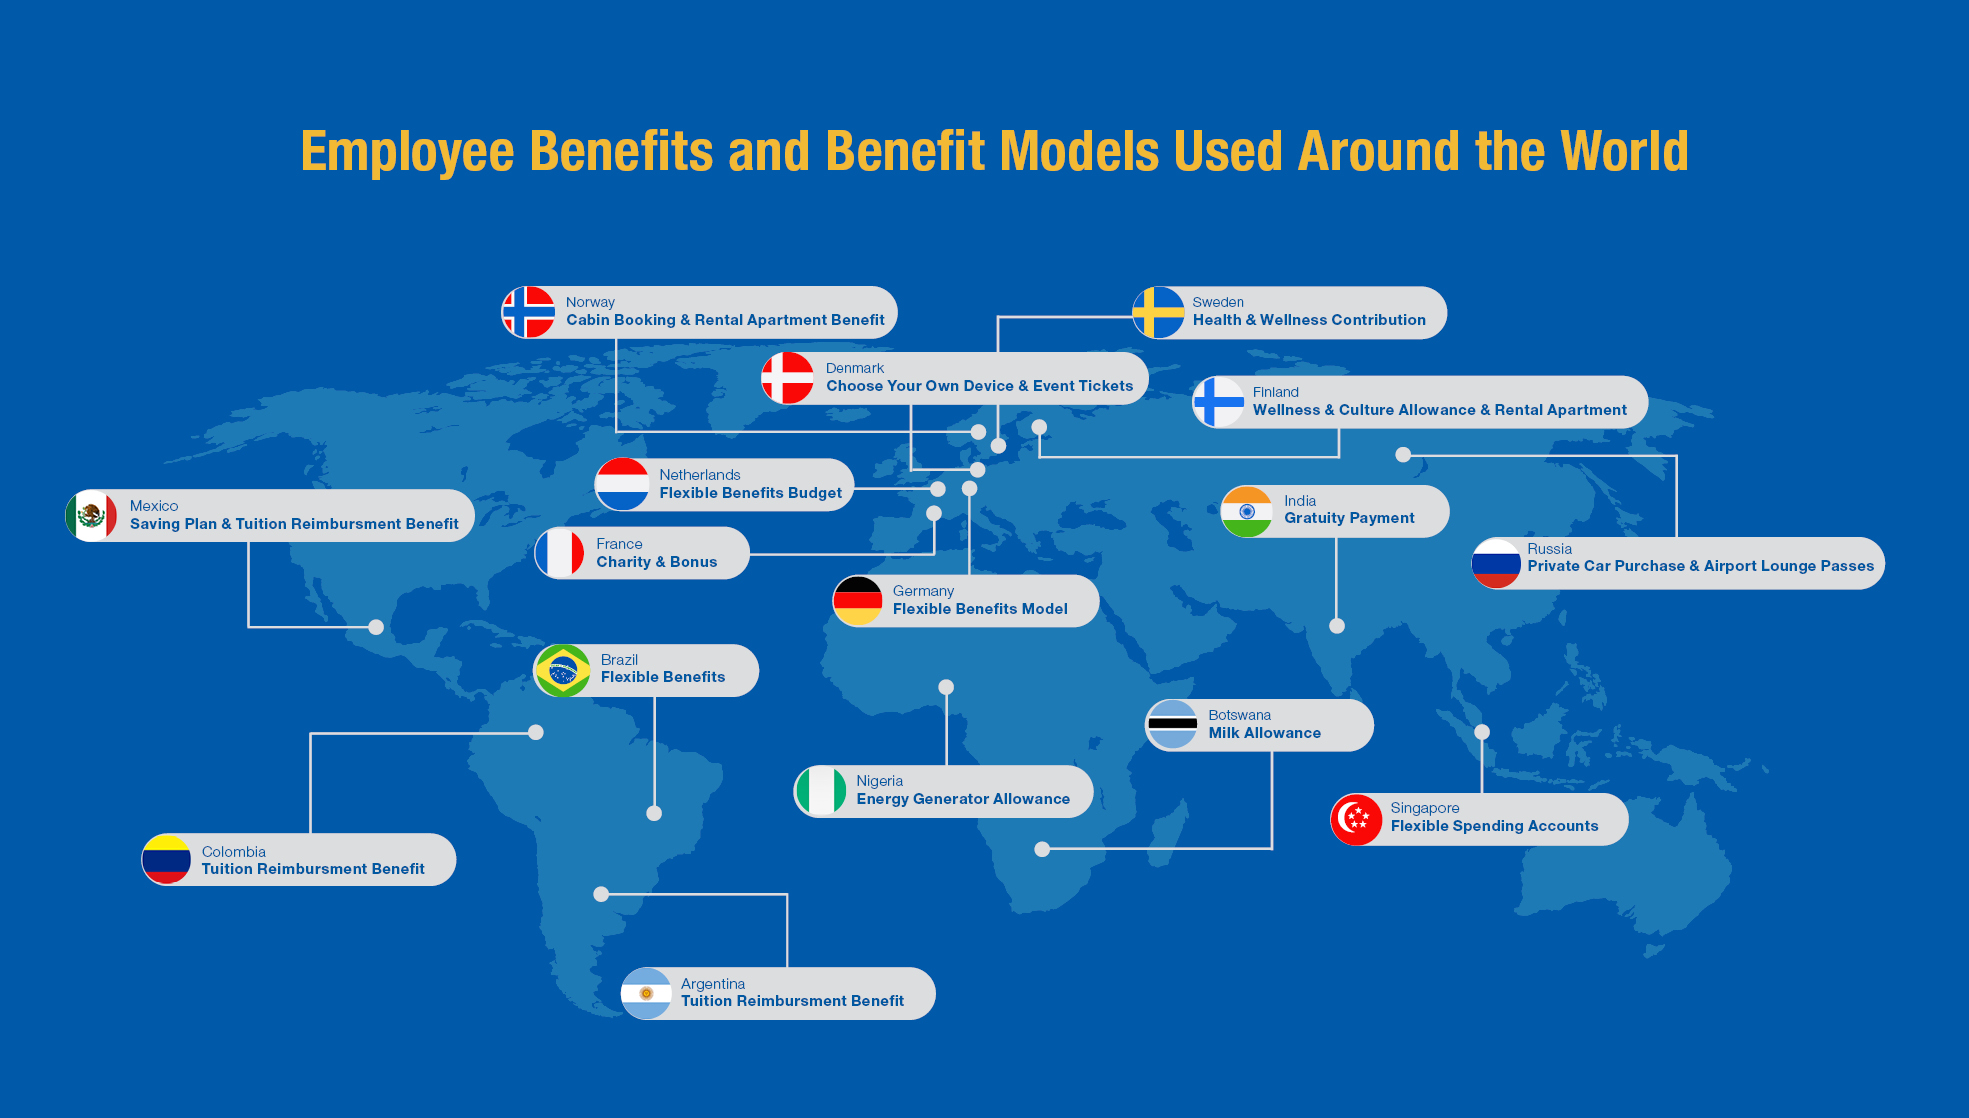 benefits-around-the-world-illustrated-map